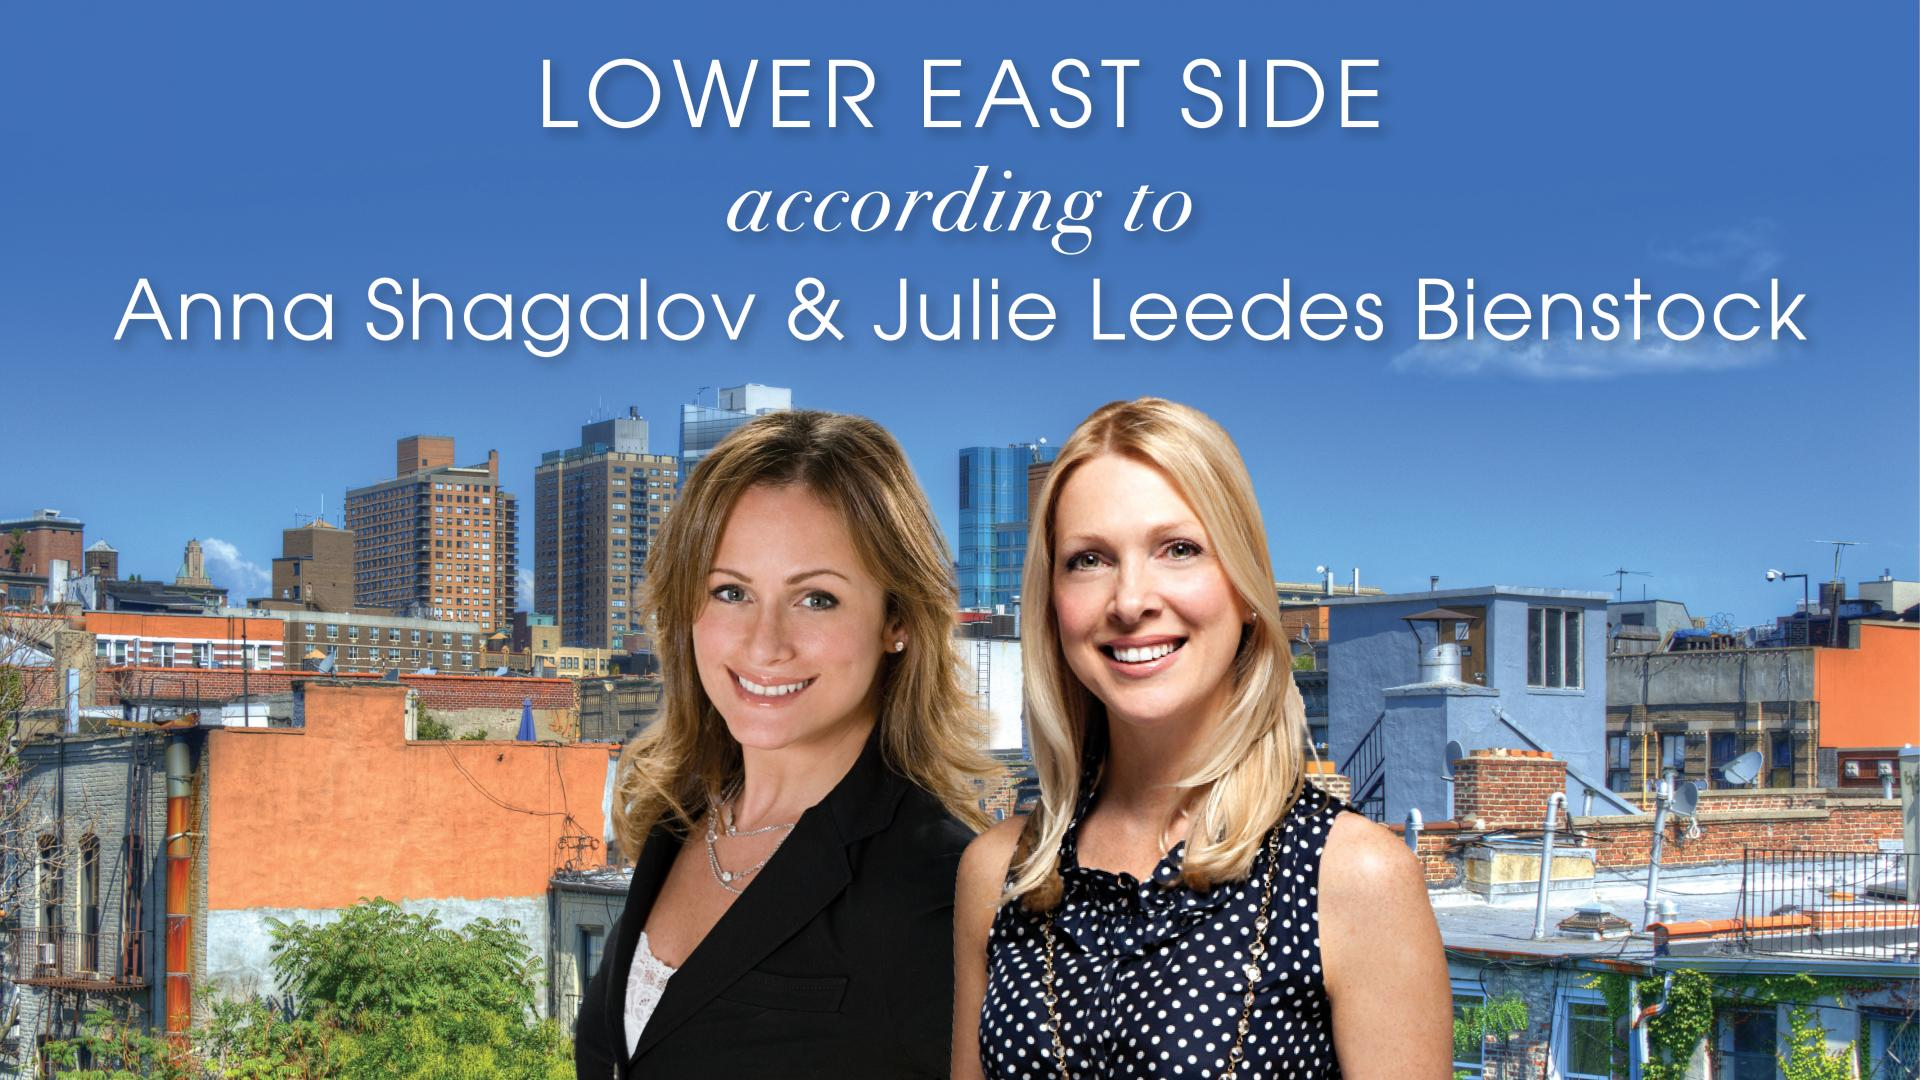 Lower East Side Tour with Julie Leedes Bienstock and Anna Shagalov